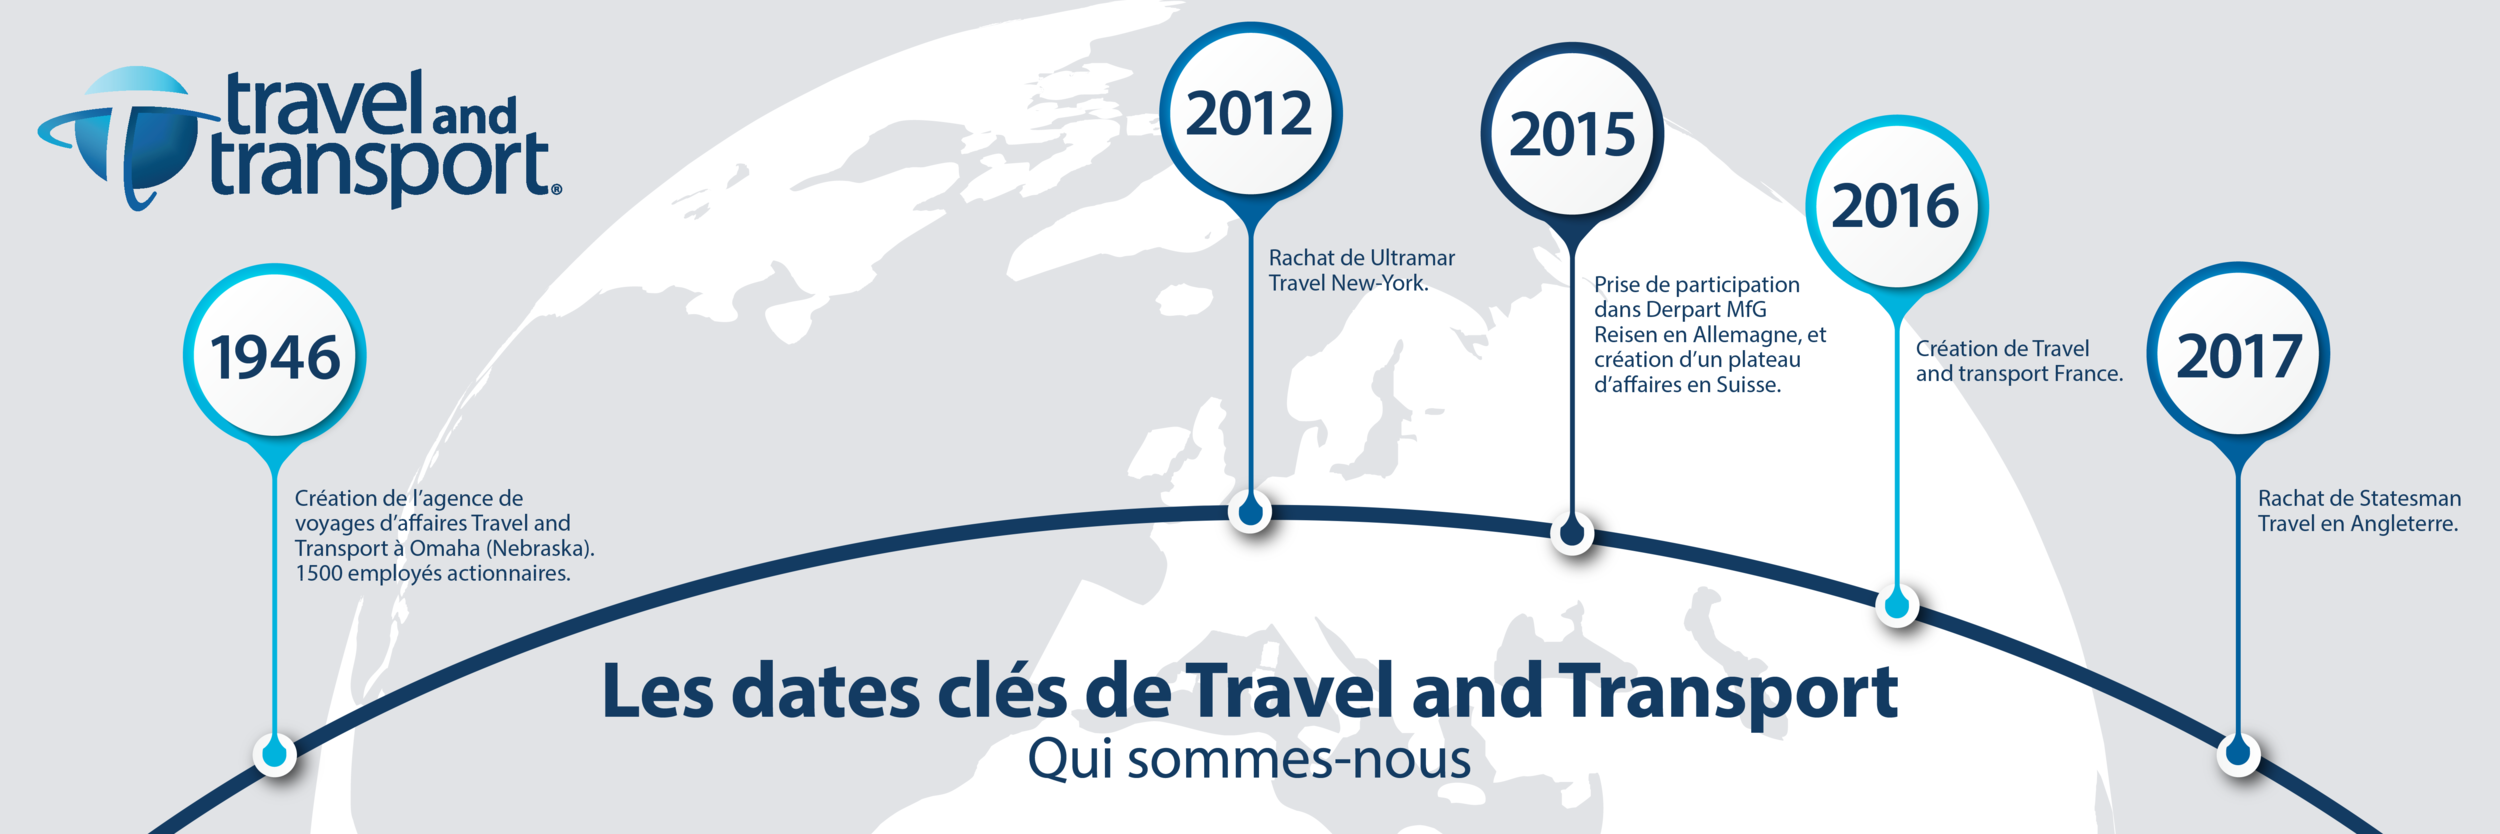 Travel and Transport dates cles